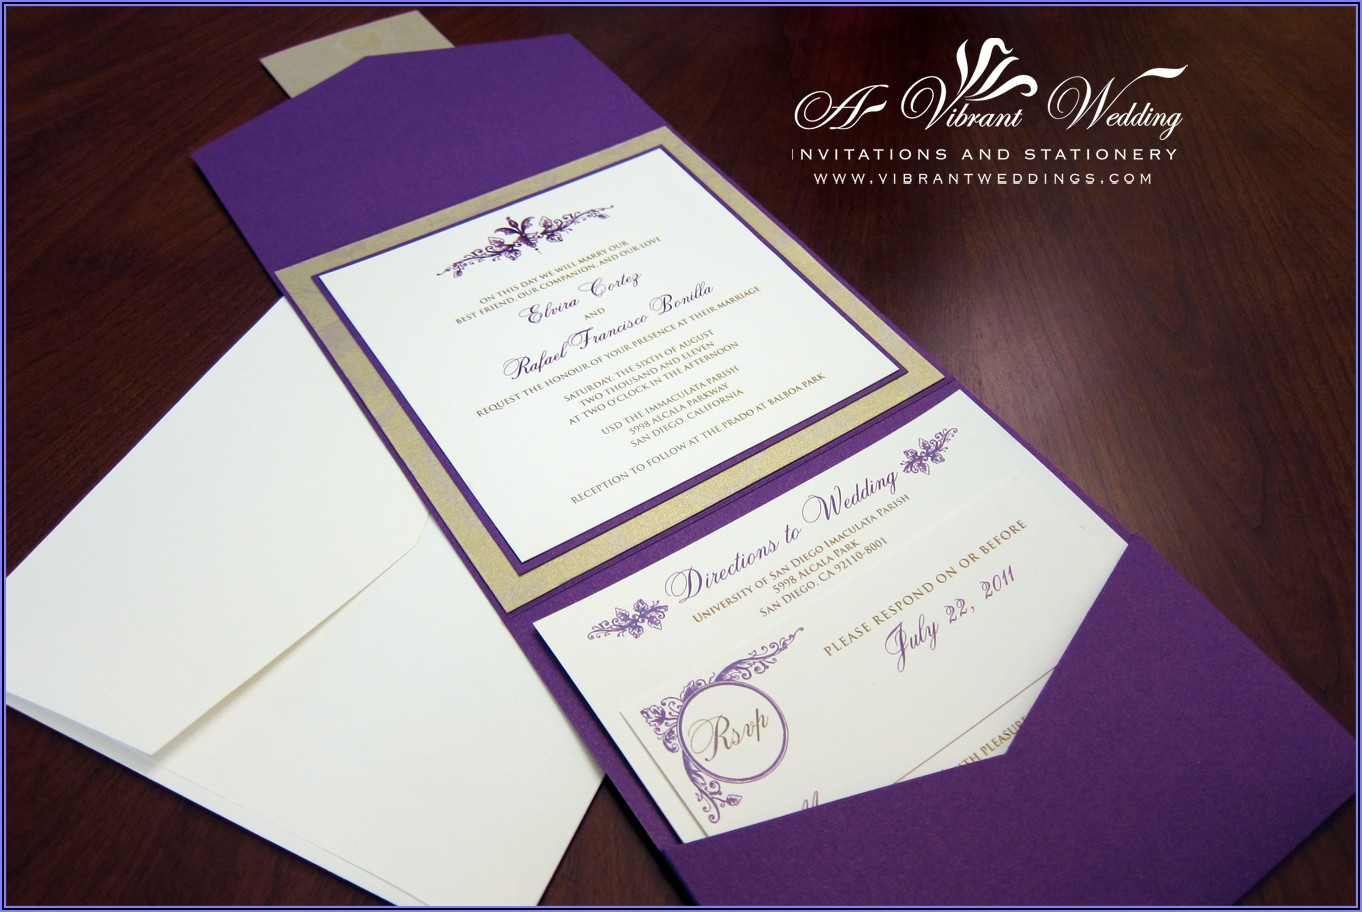 Wedding Invitation Design Software Free Download